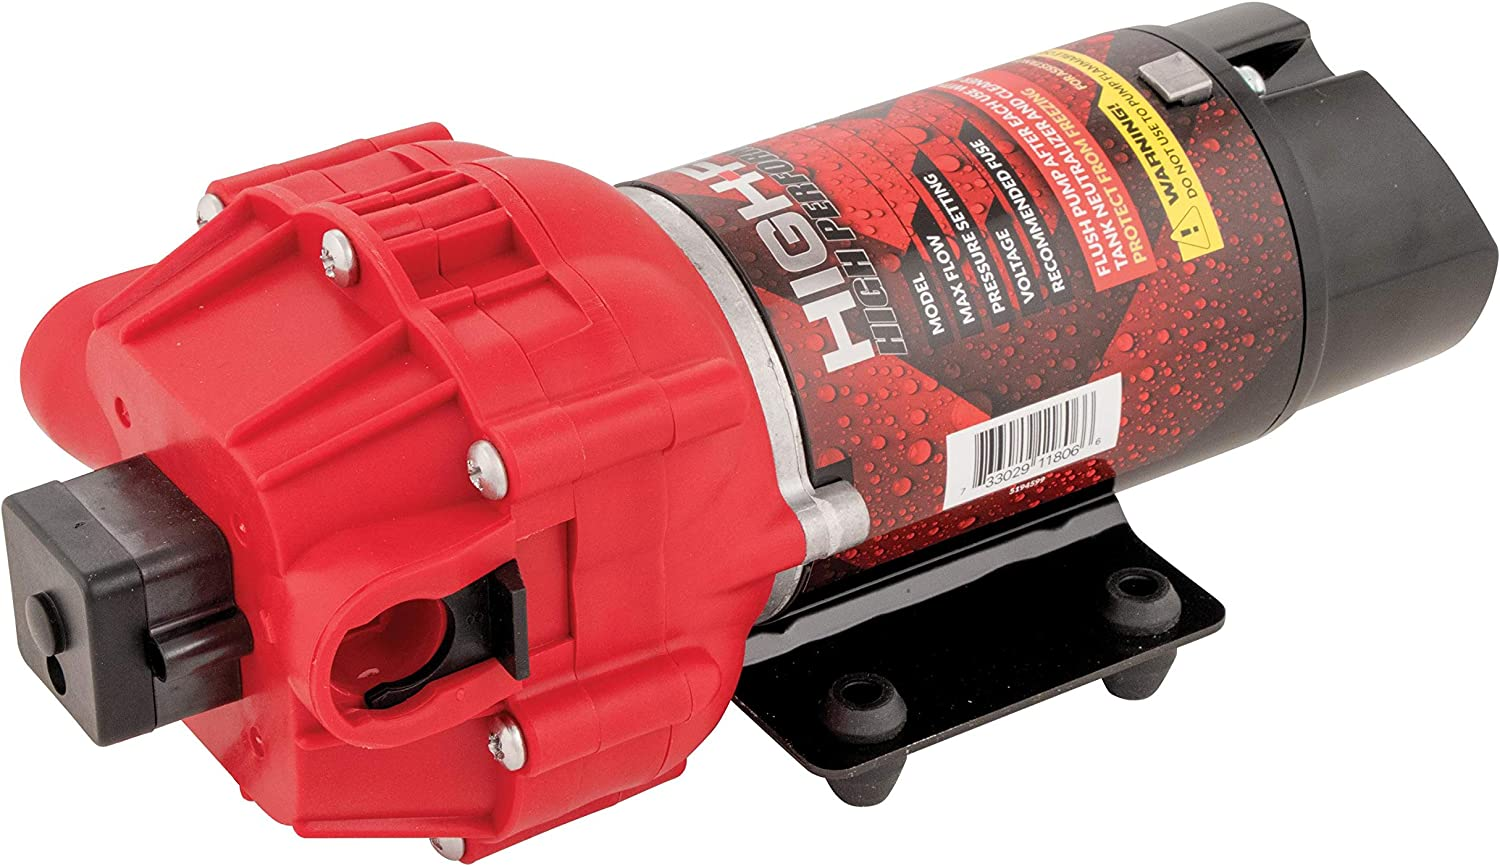 Fimco 5275087 High Flo 12 Volt Diaphragm Sprayer Pump 60 PSI Max 2.1 GPM 8 Amps Demand Switch Roundup Ready No Flammable Or Combustible Fluids with Internal Fan Cools Pump Up To 50/% During Operations